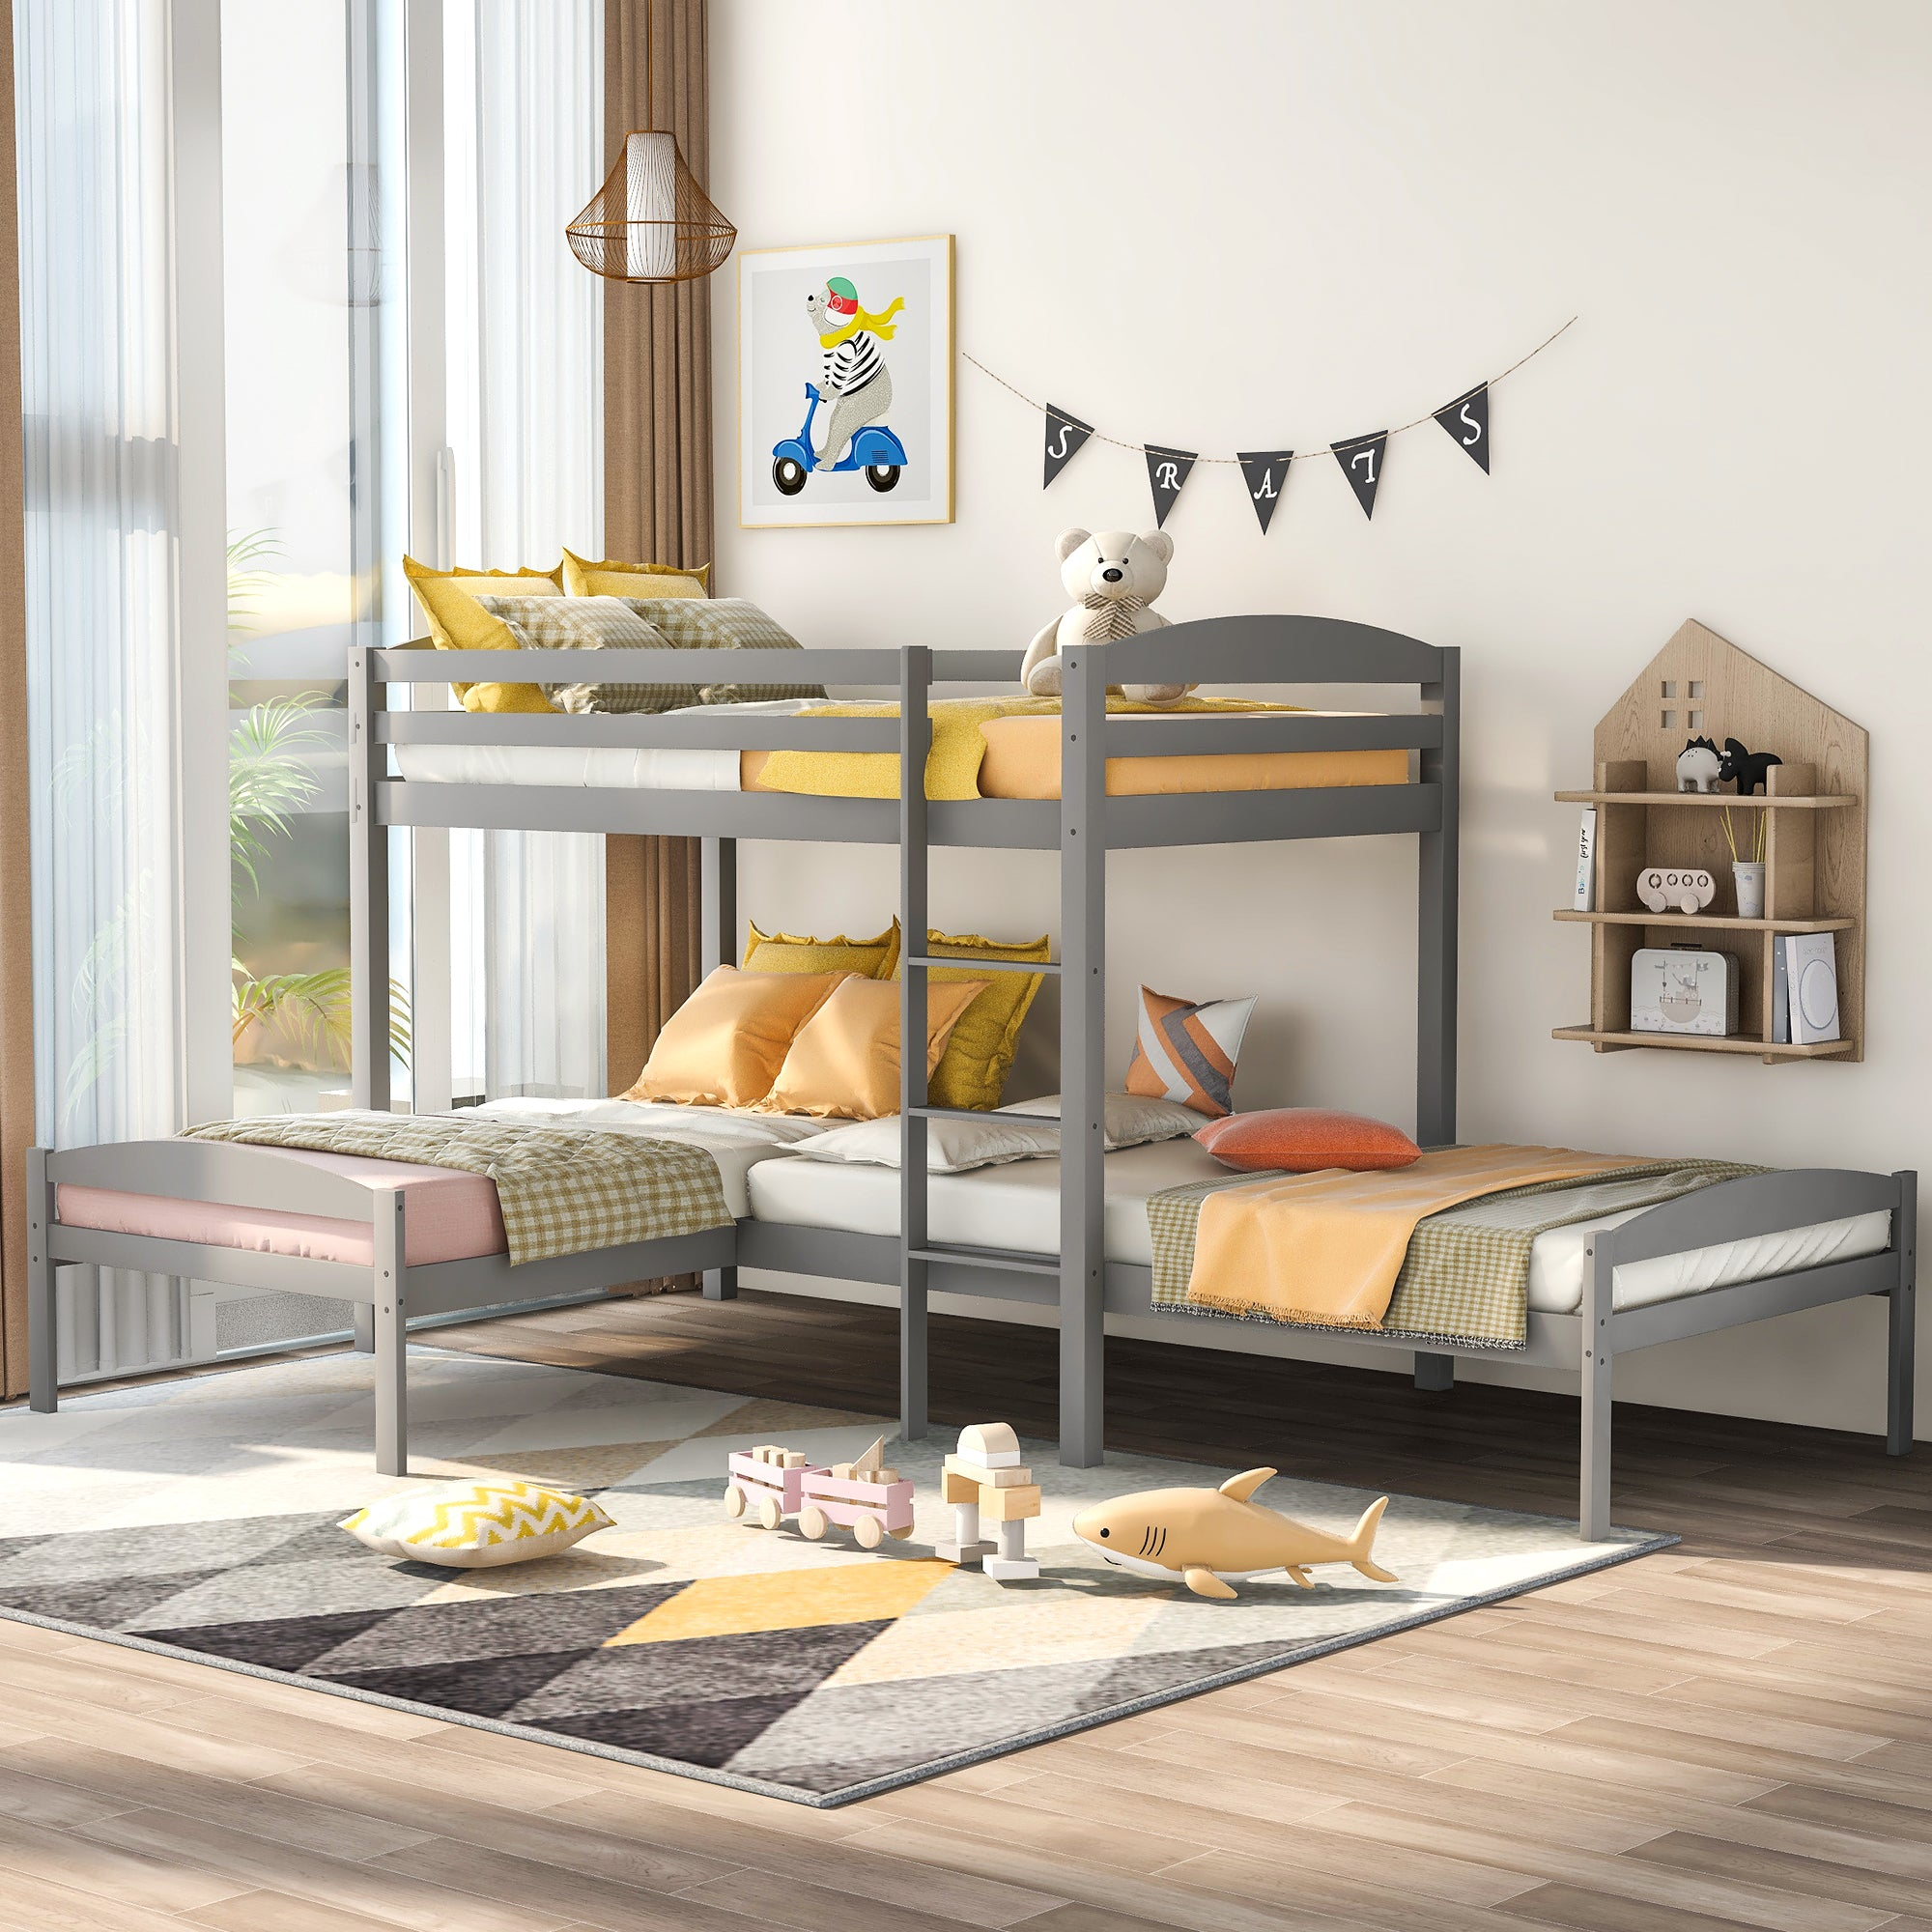 L-shaped Twin Over Twin Bunk Bed For Kids and Teens